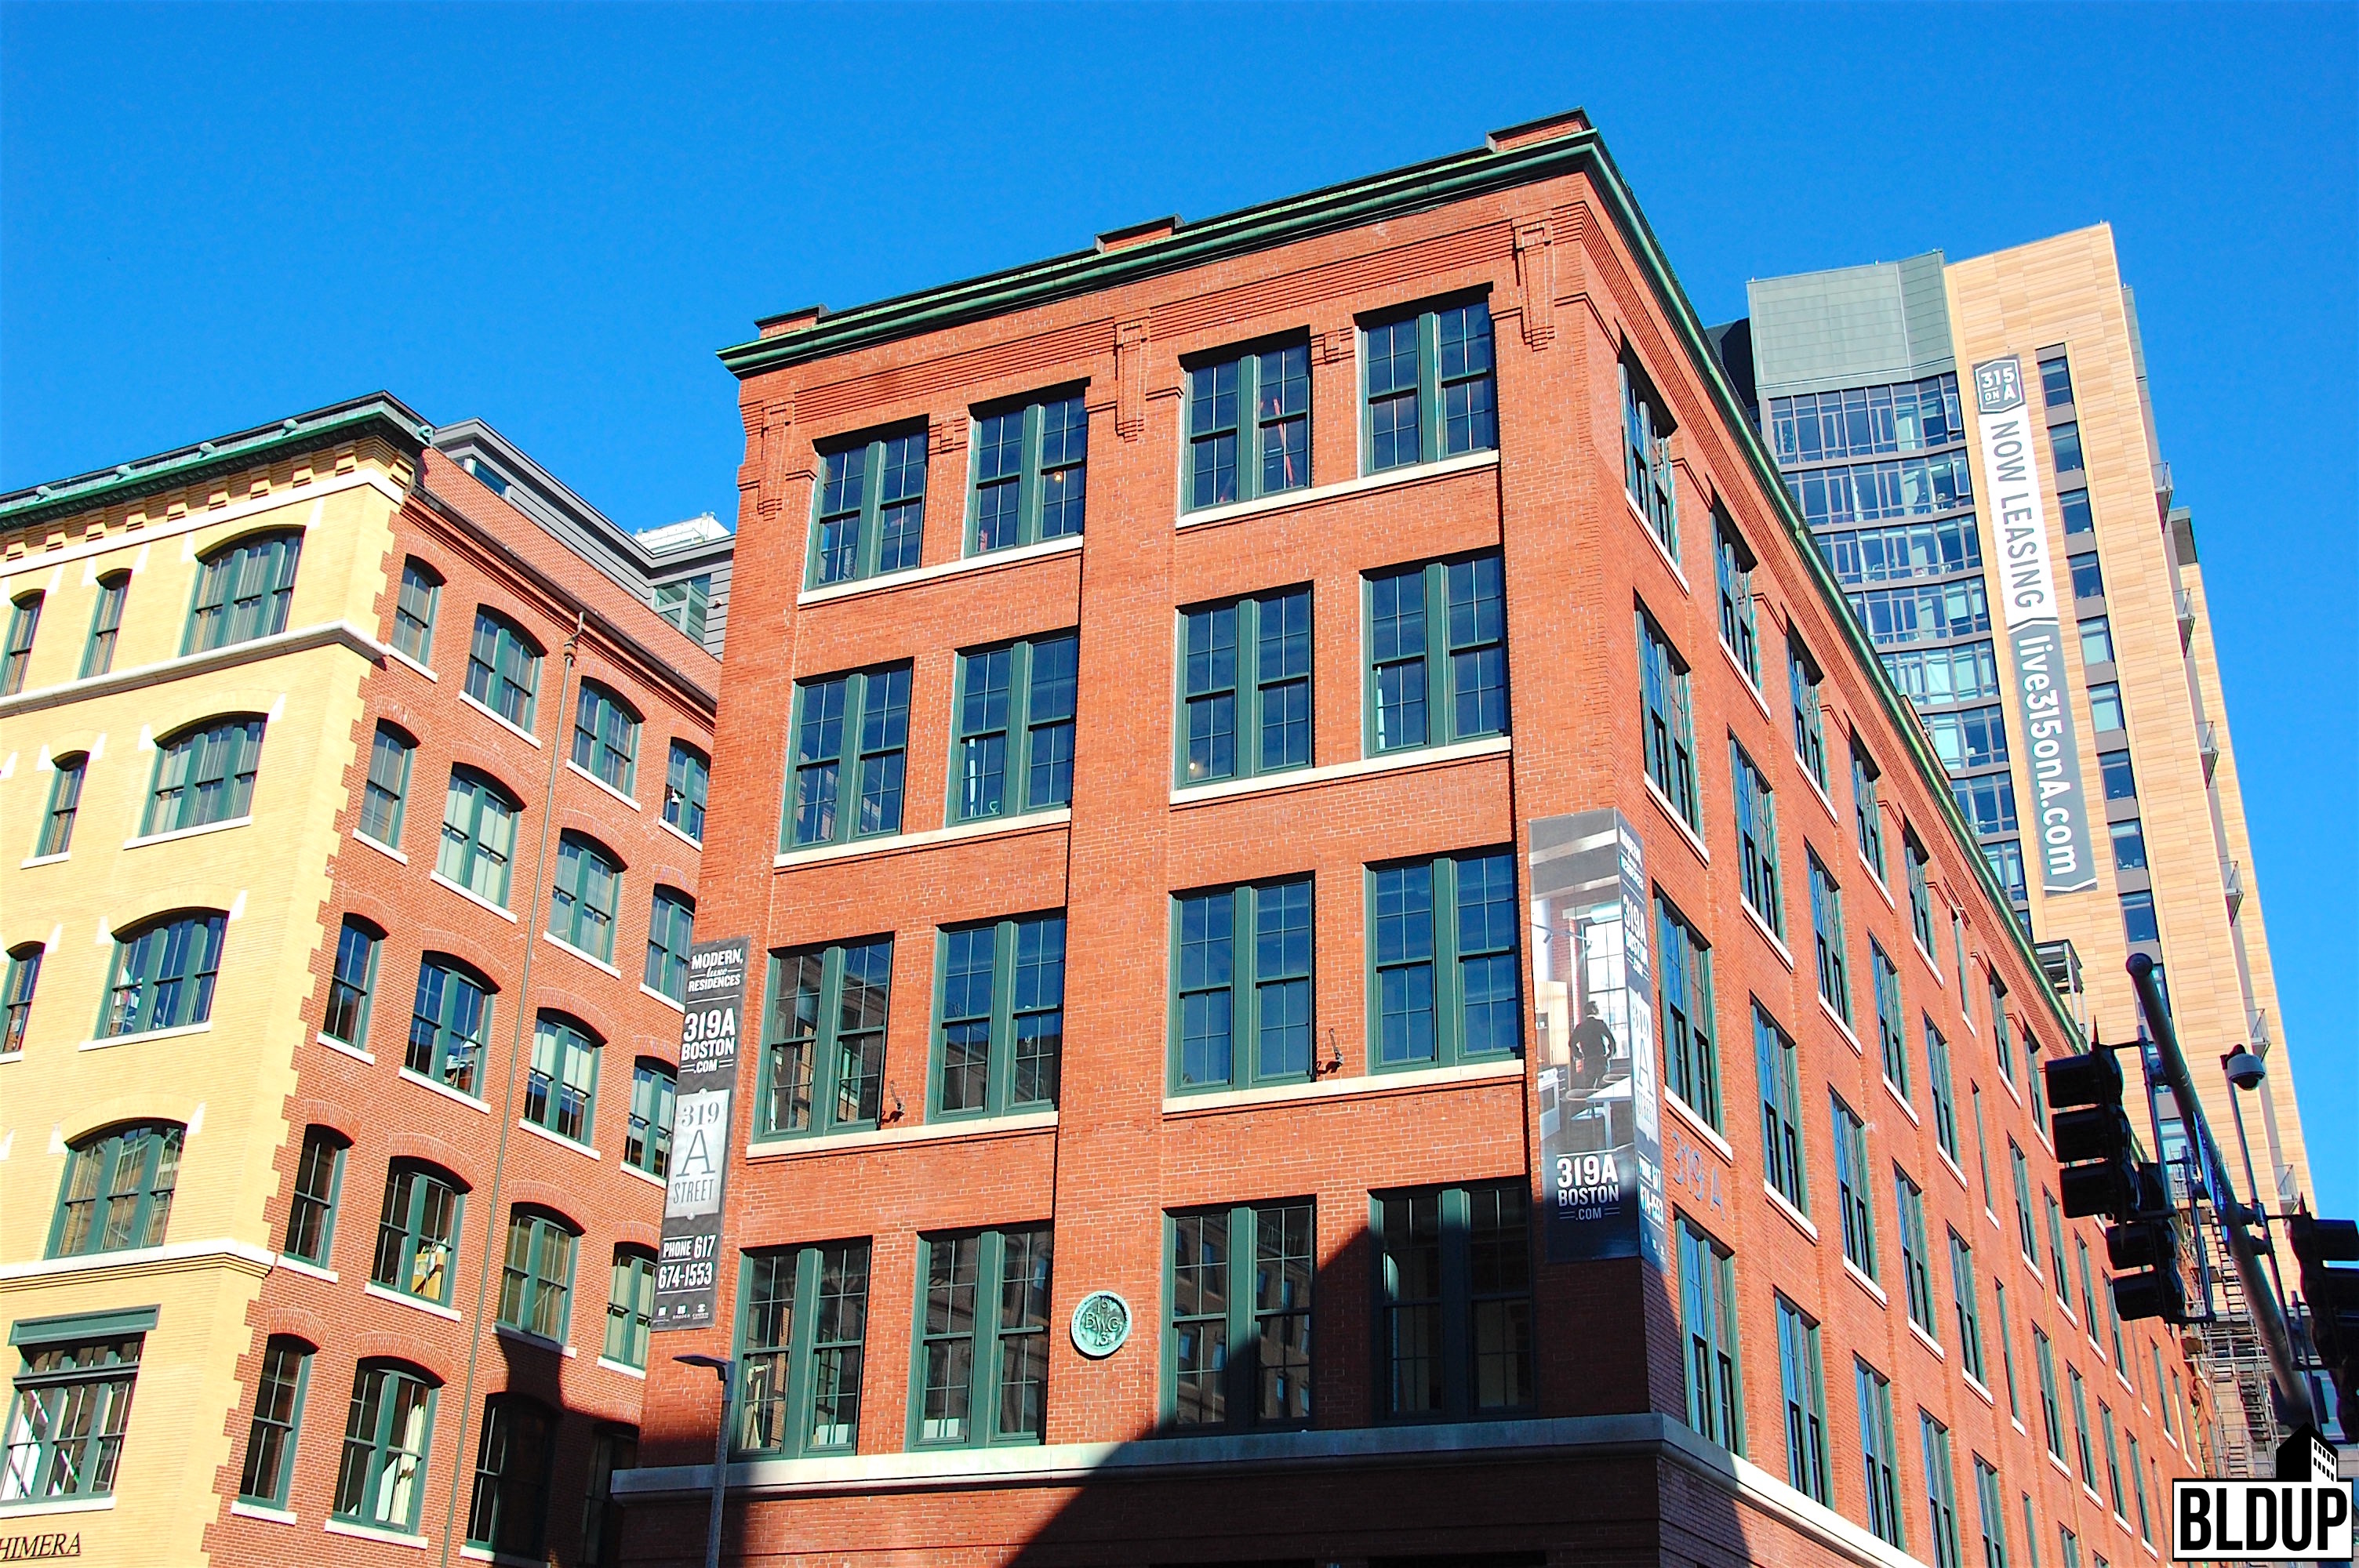 319 a street fort point south boston waterfront southie residential condominium 48 luxury building boston residential group development broder properties investment lee kennedy company construction